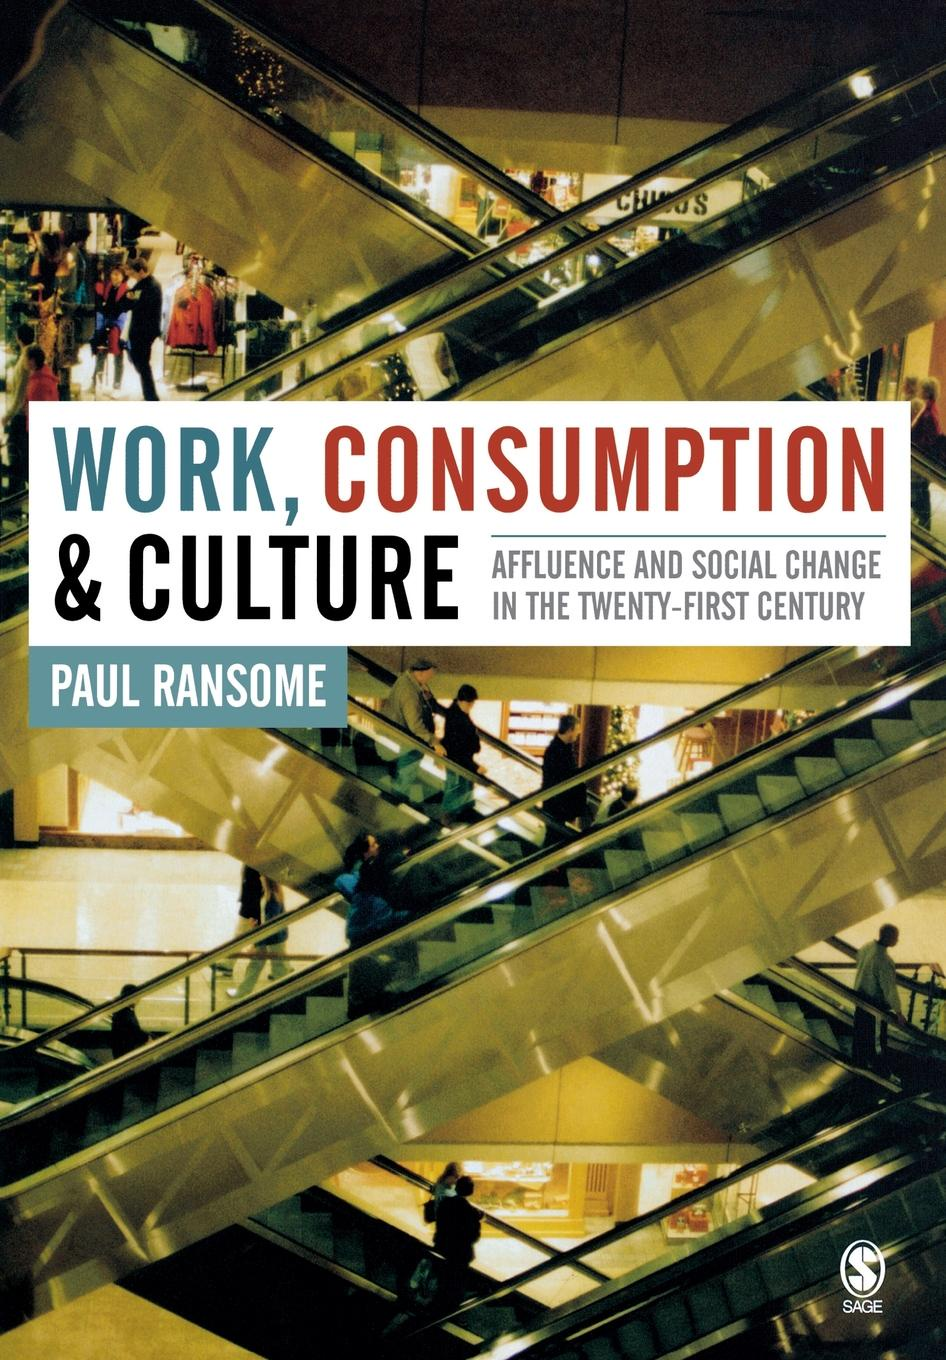 Paul Ransome Work, Consumption and Culture. Affluence and Social Change in the Twenty-First Century heather carpenter the talent development platform putting people first in social change organizations